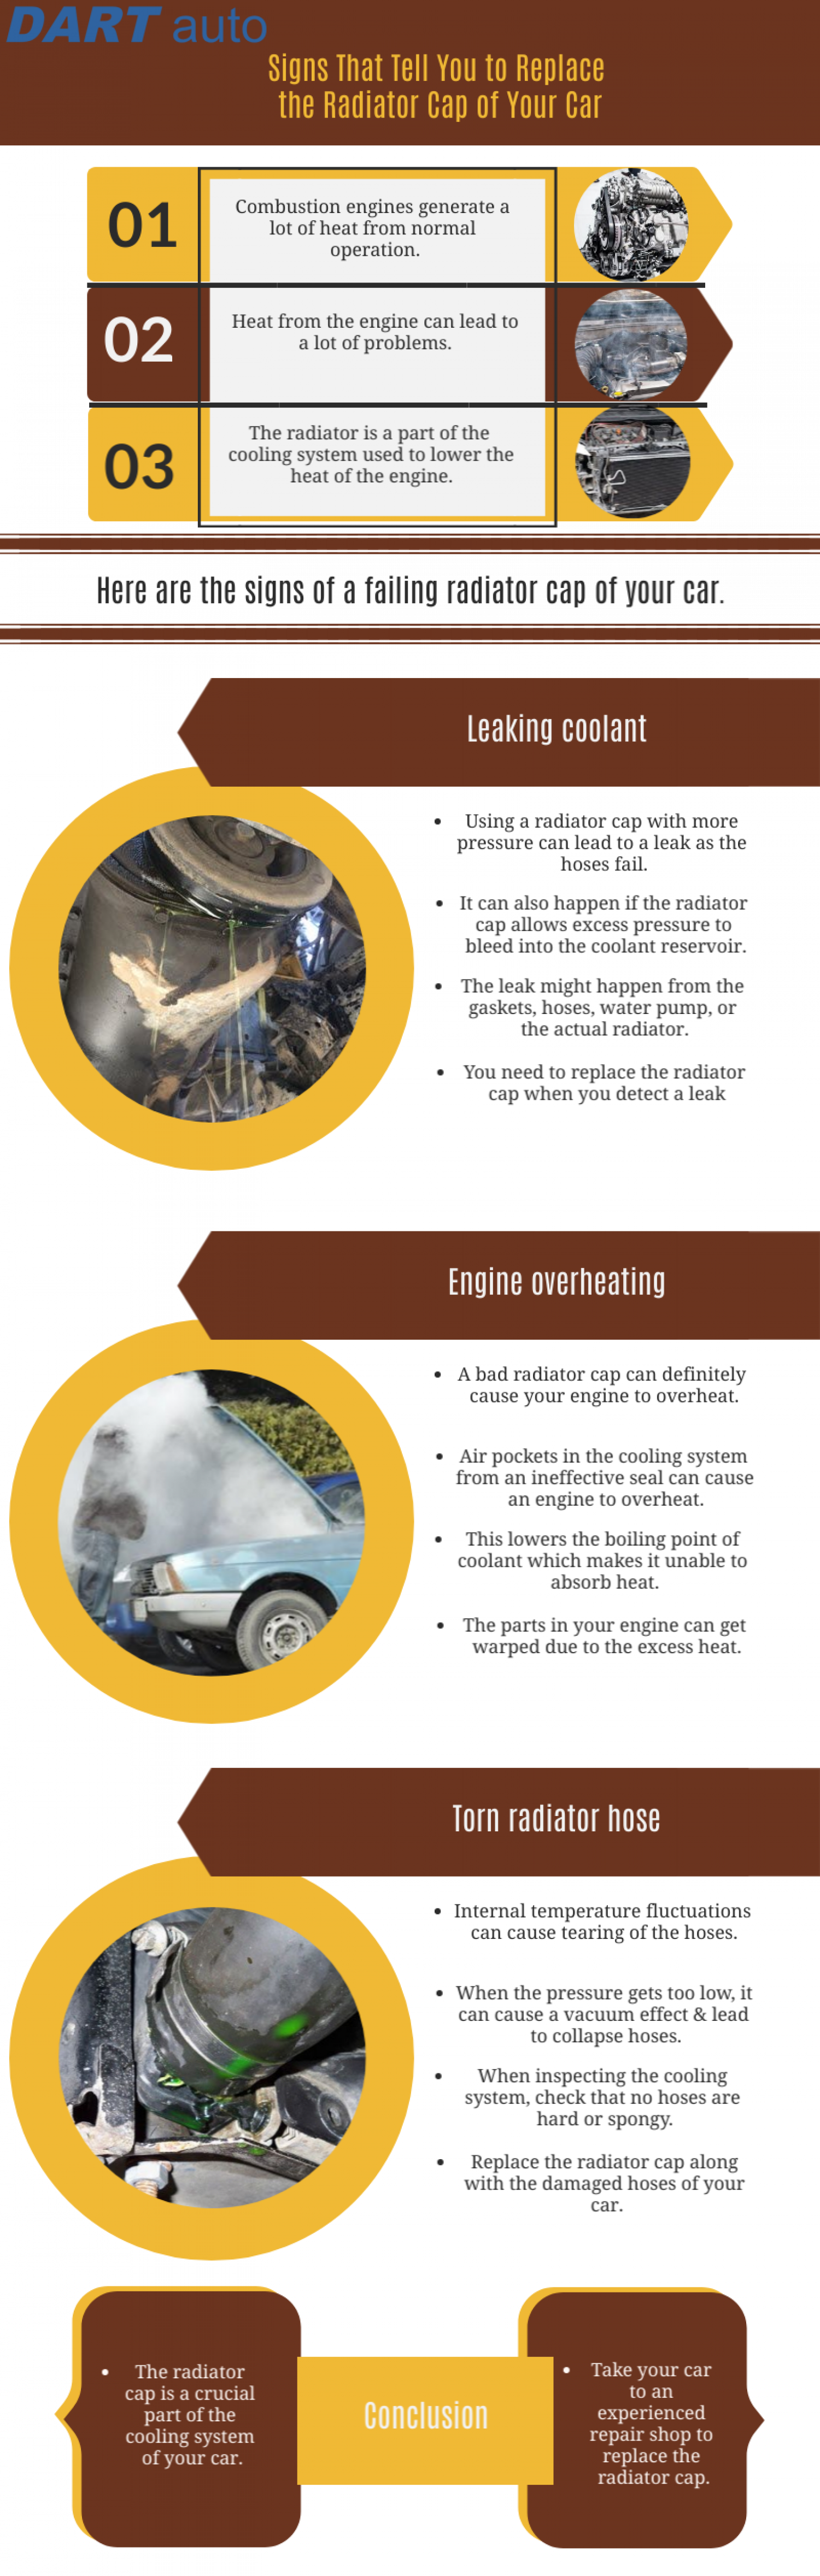 Signs that tell you to replace the radiator cap of your car Infographic